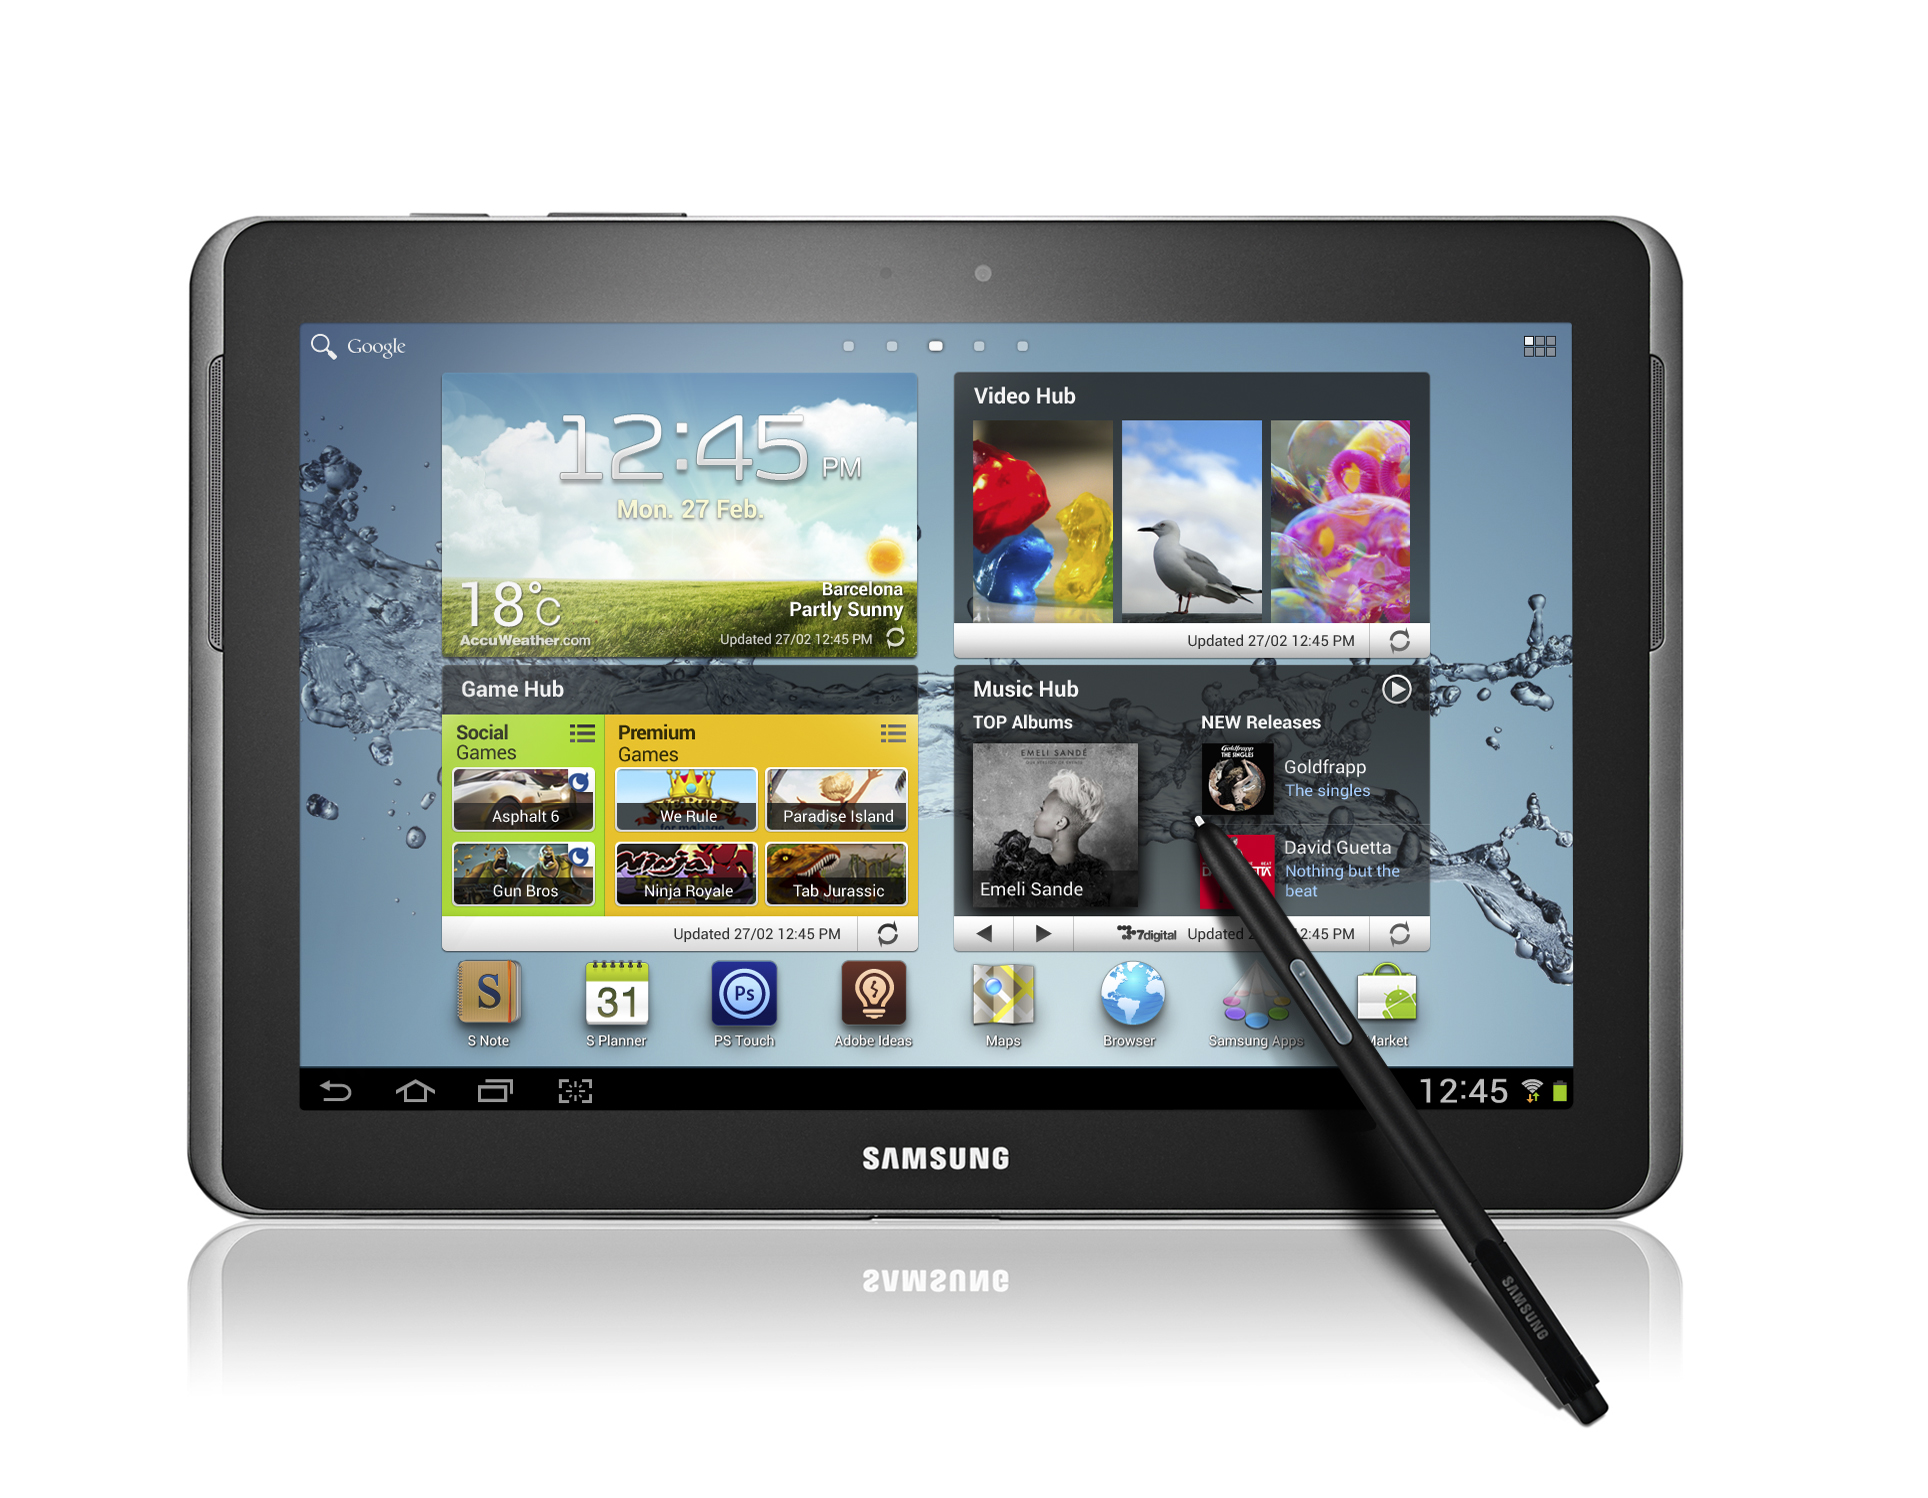 Samsung Galaxy Note 10.1 Launching This Month